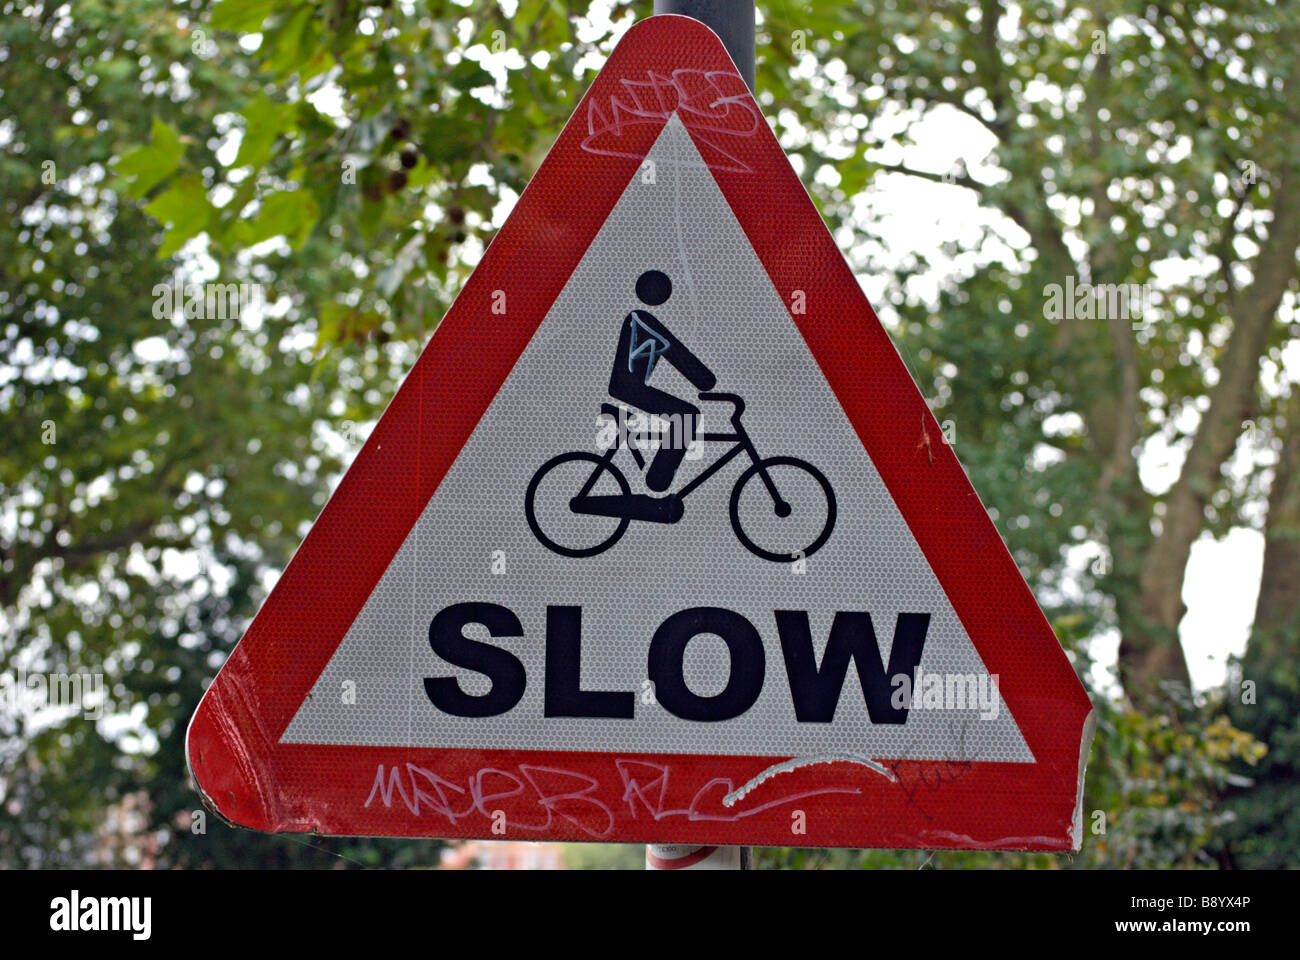 british red and white triangular road sign warning cyclists to go slow Stock Photo